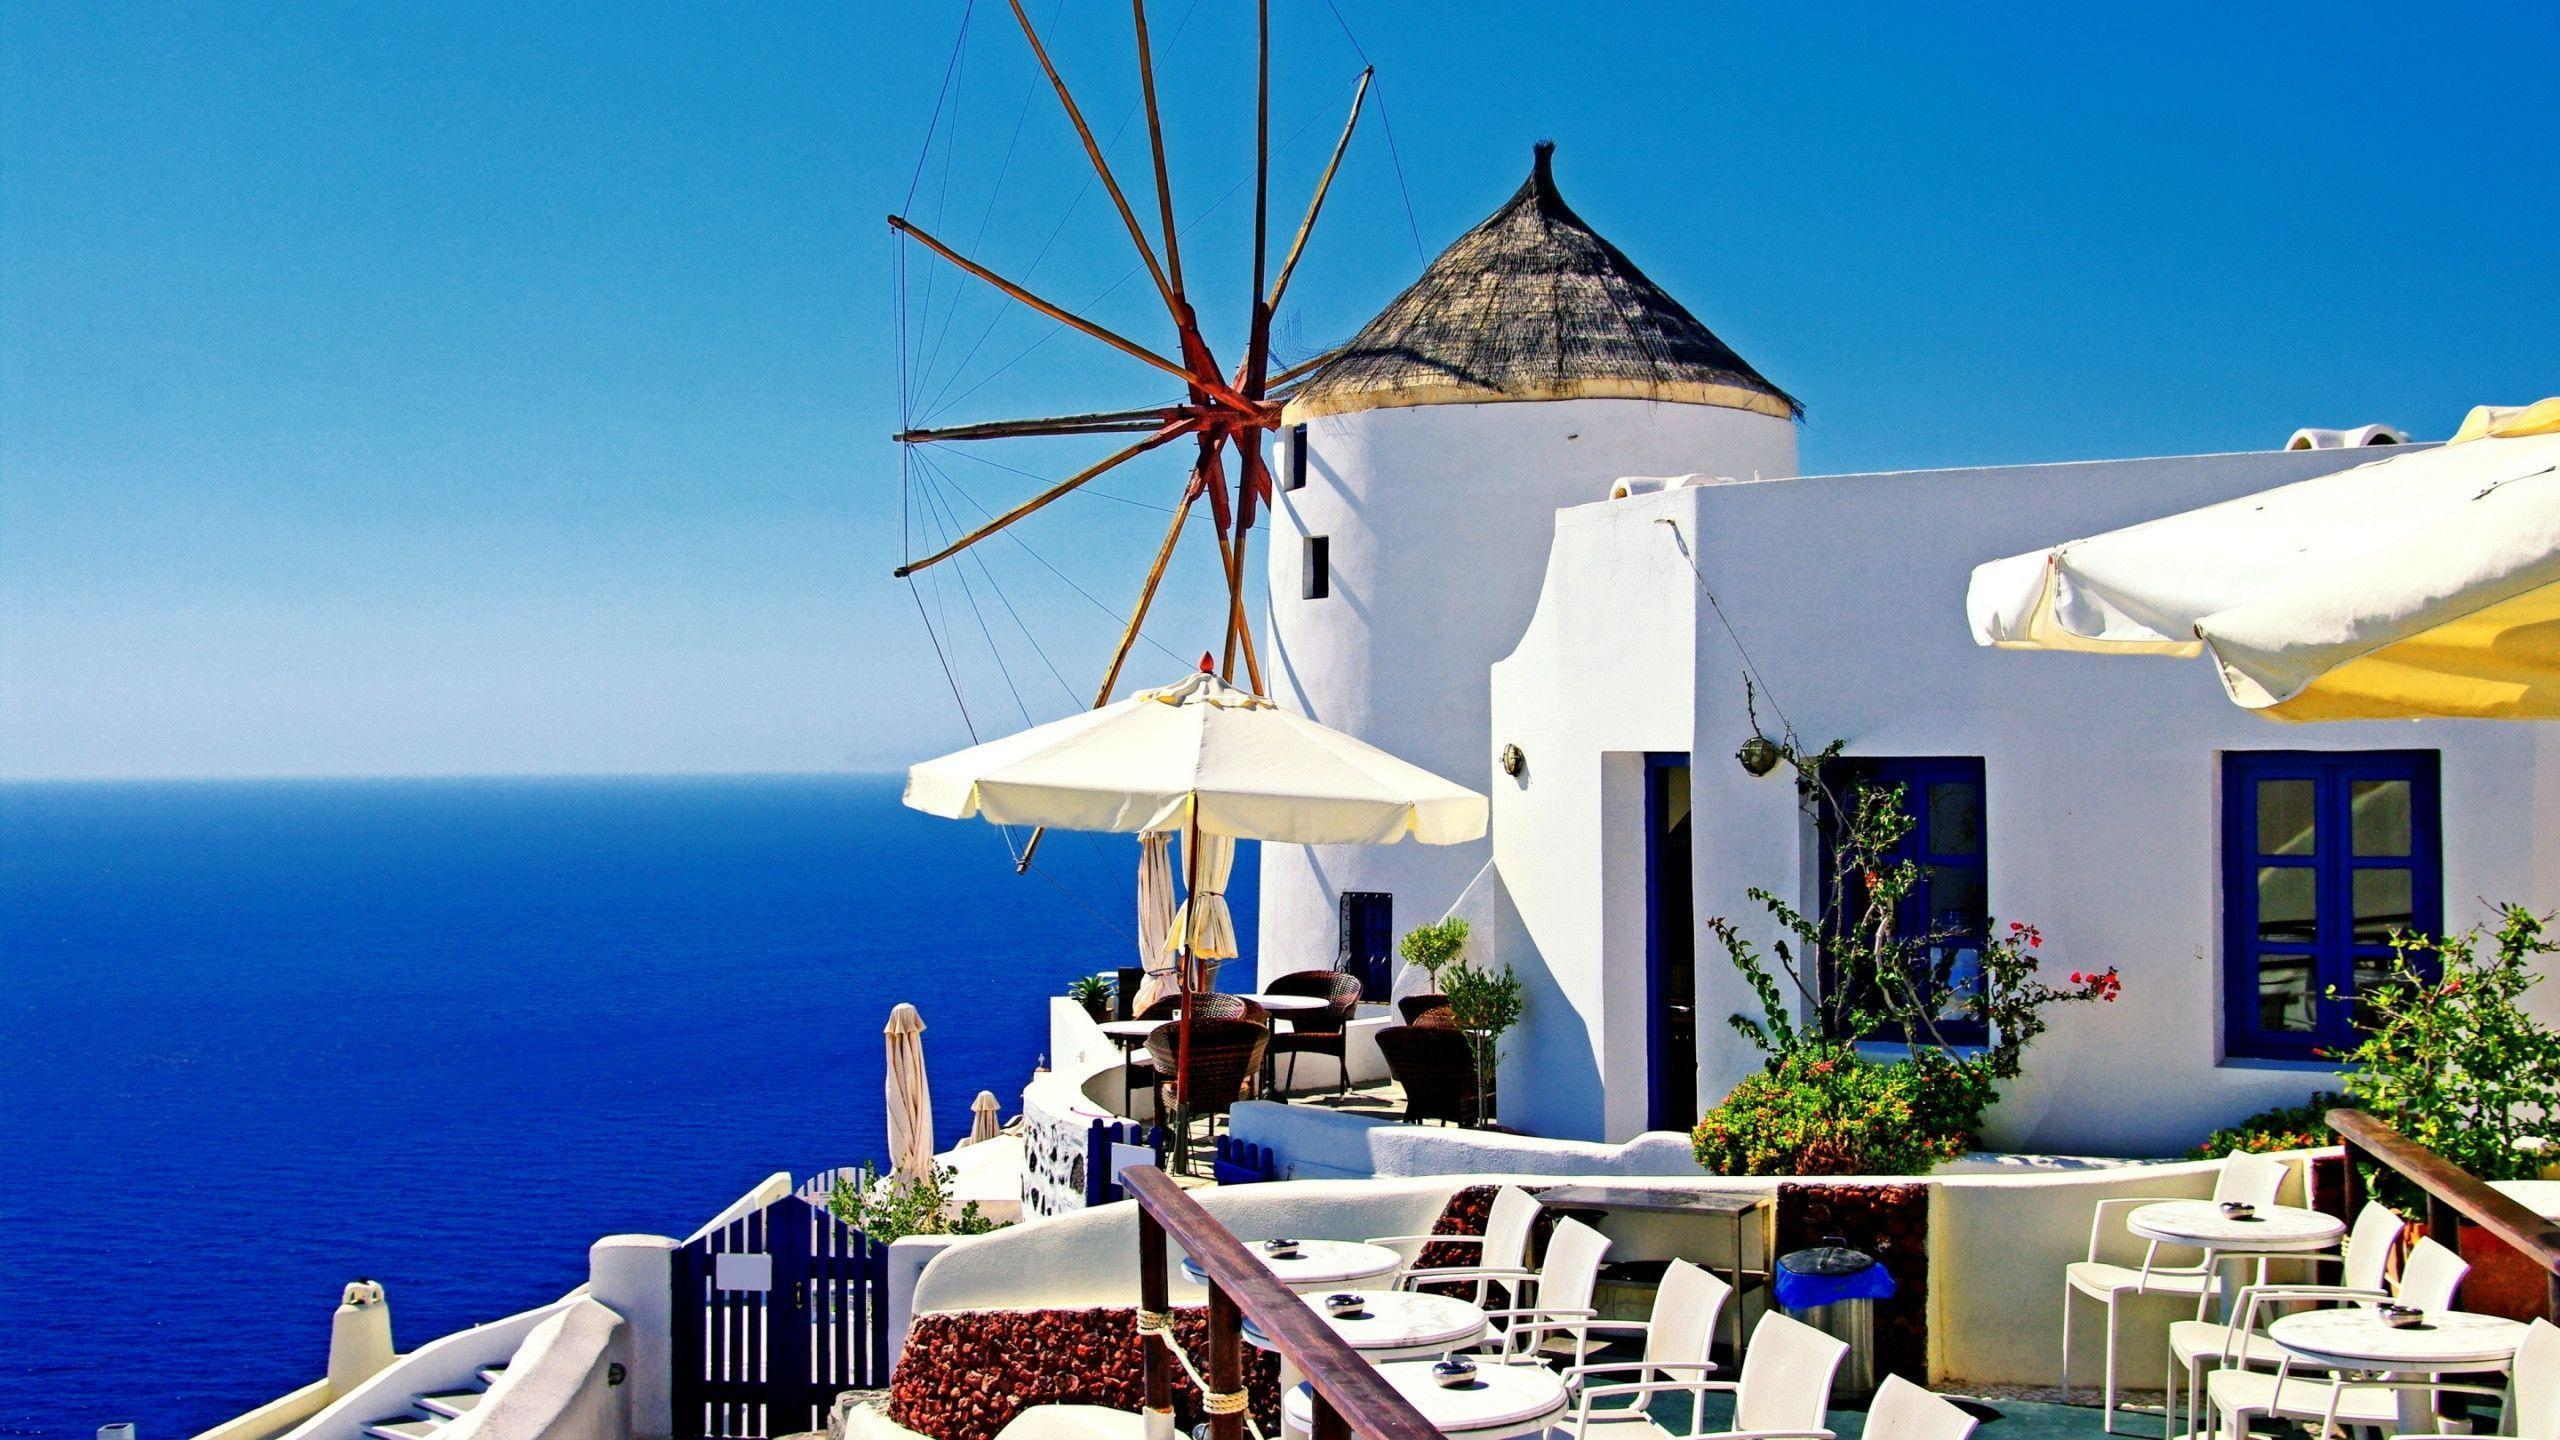 Small Town Oia Santorini Greece Widescreen Wallpapers